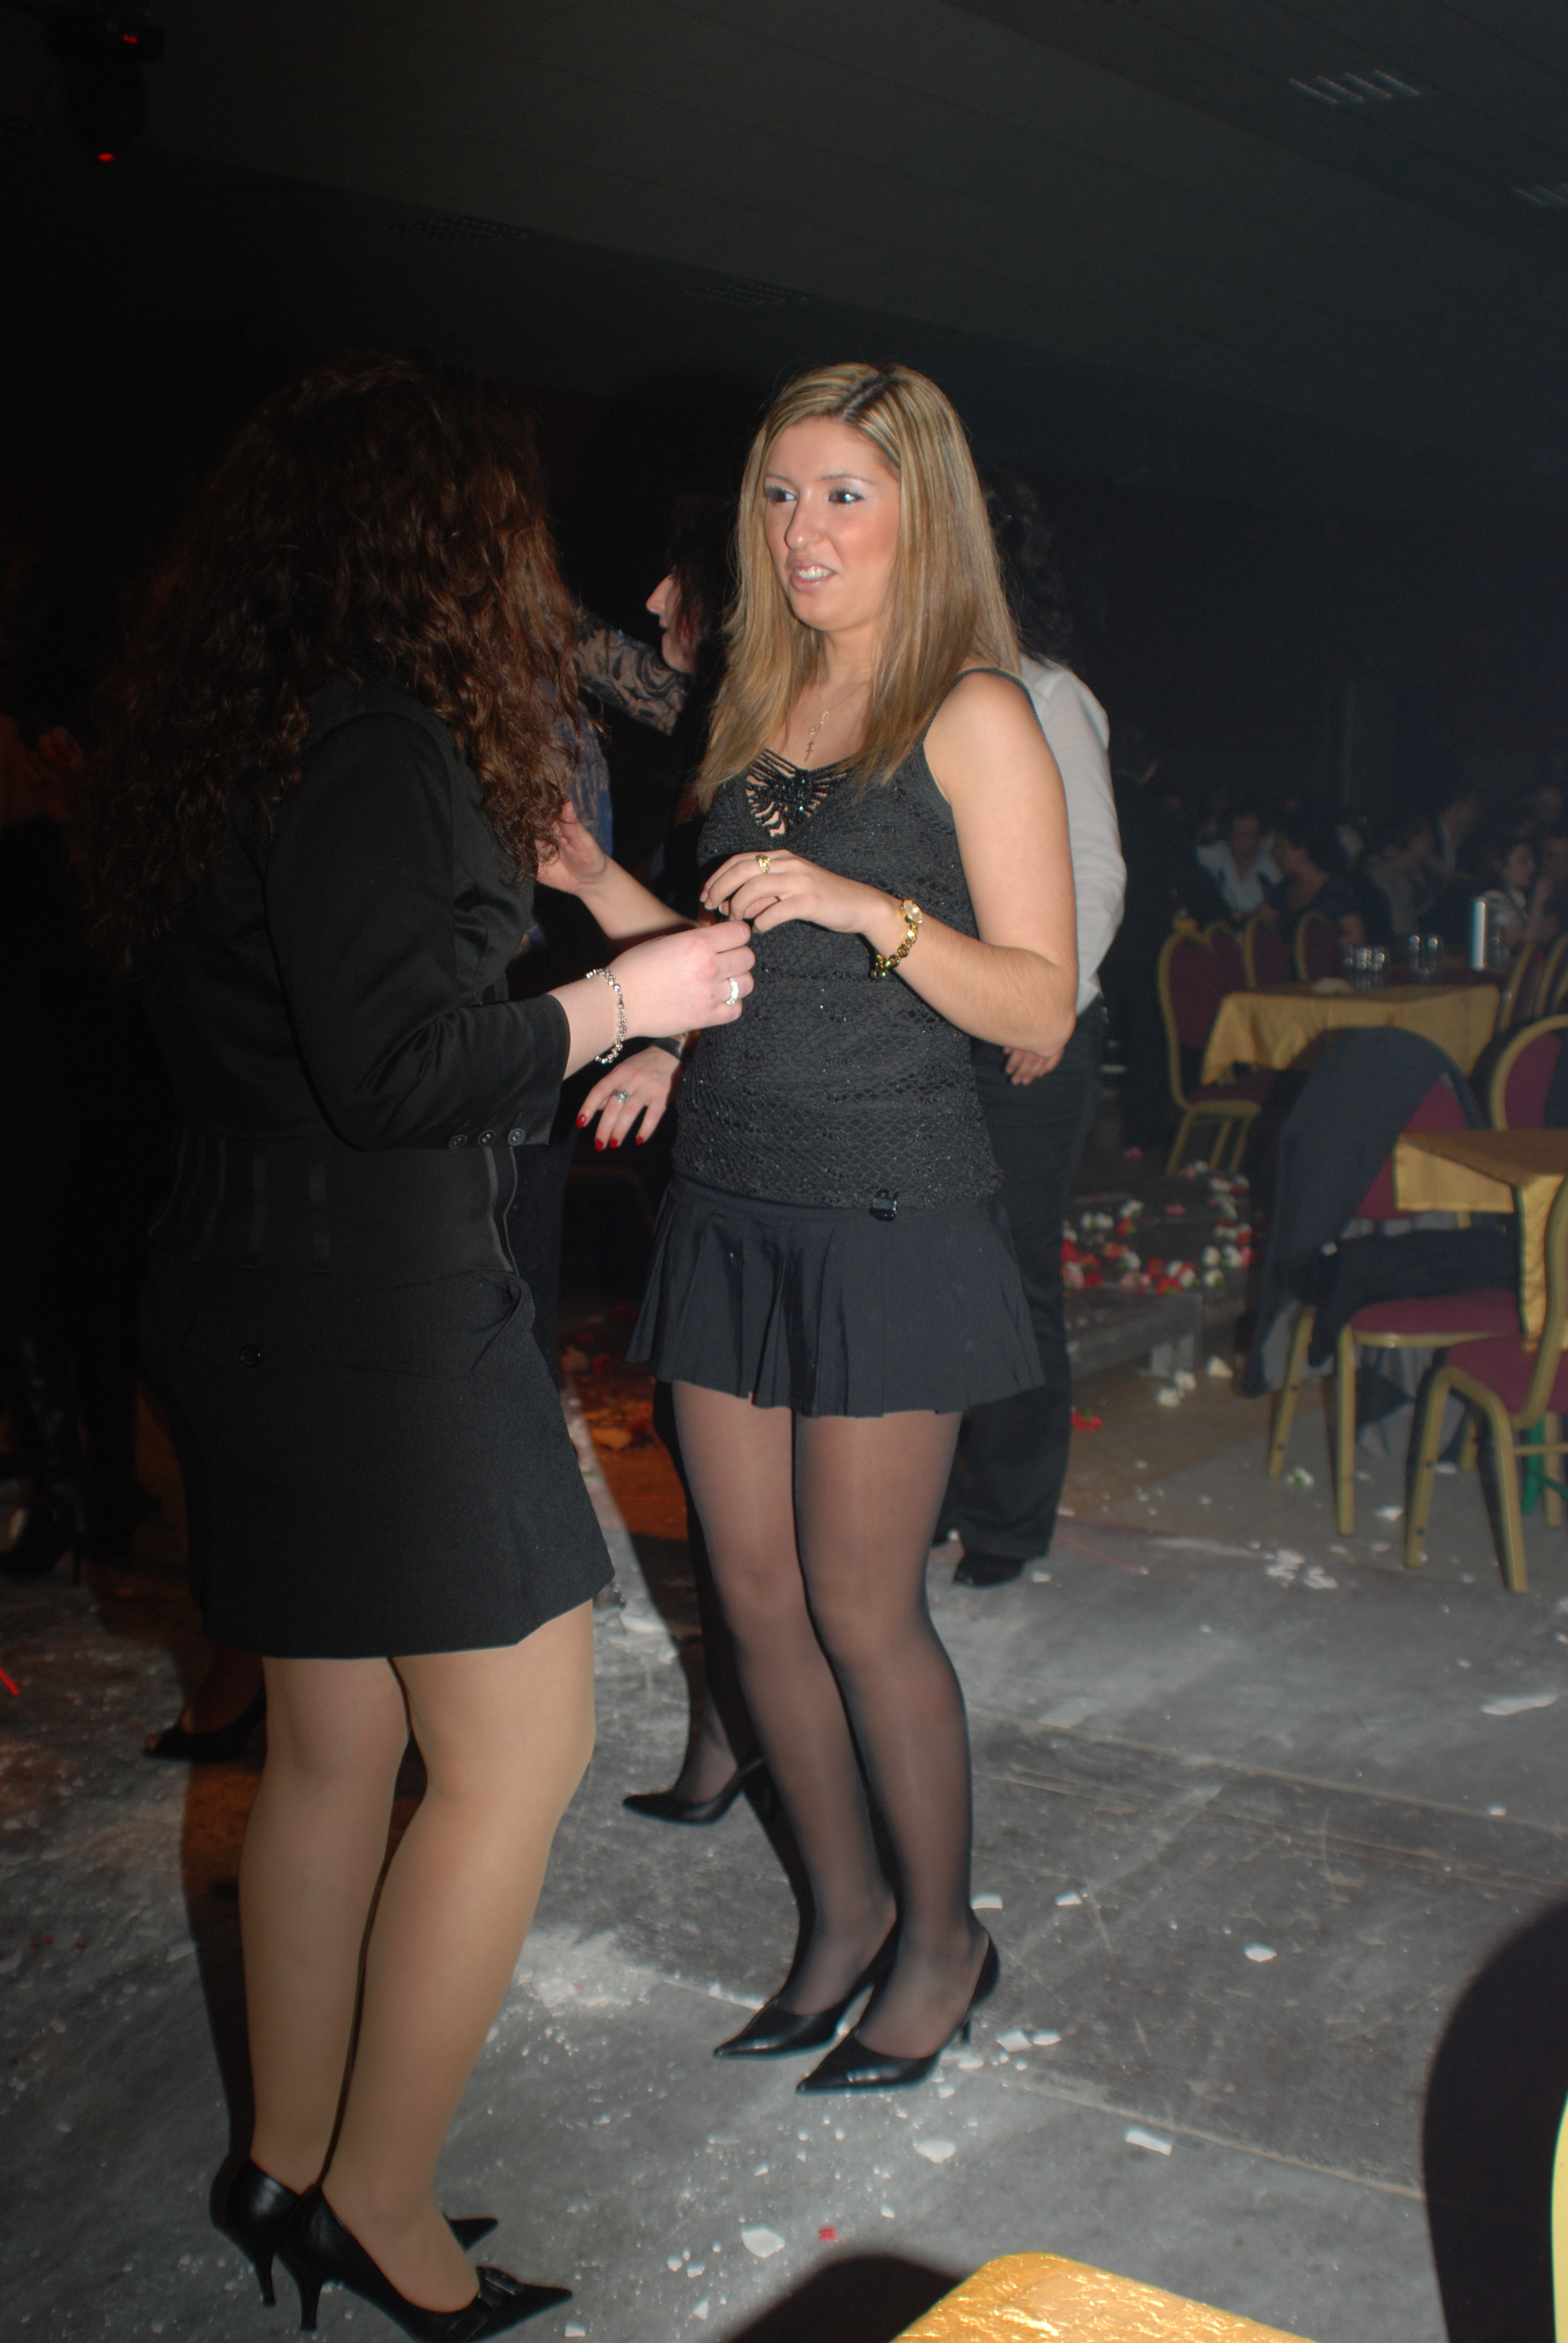 Upskirt Party girl quite think